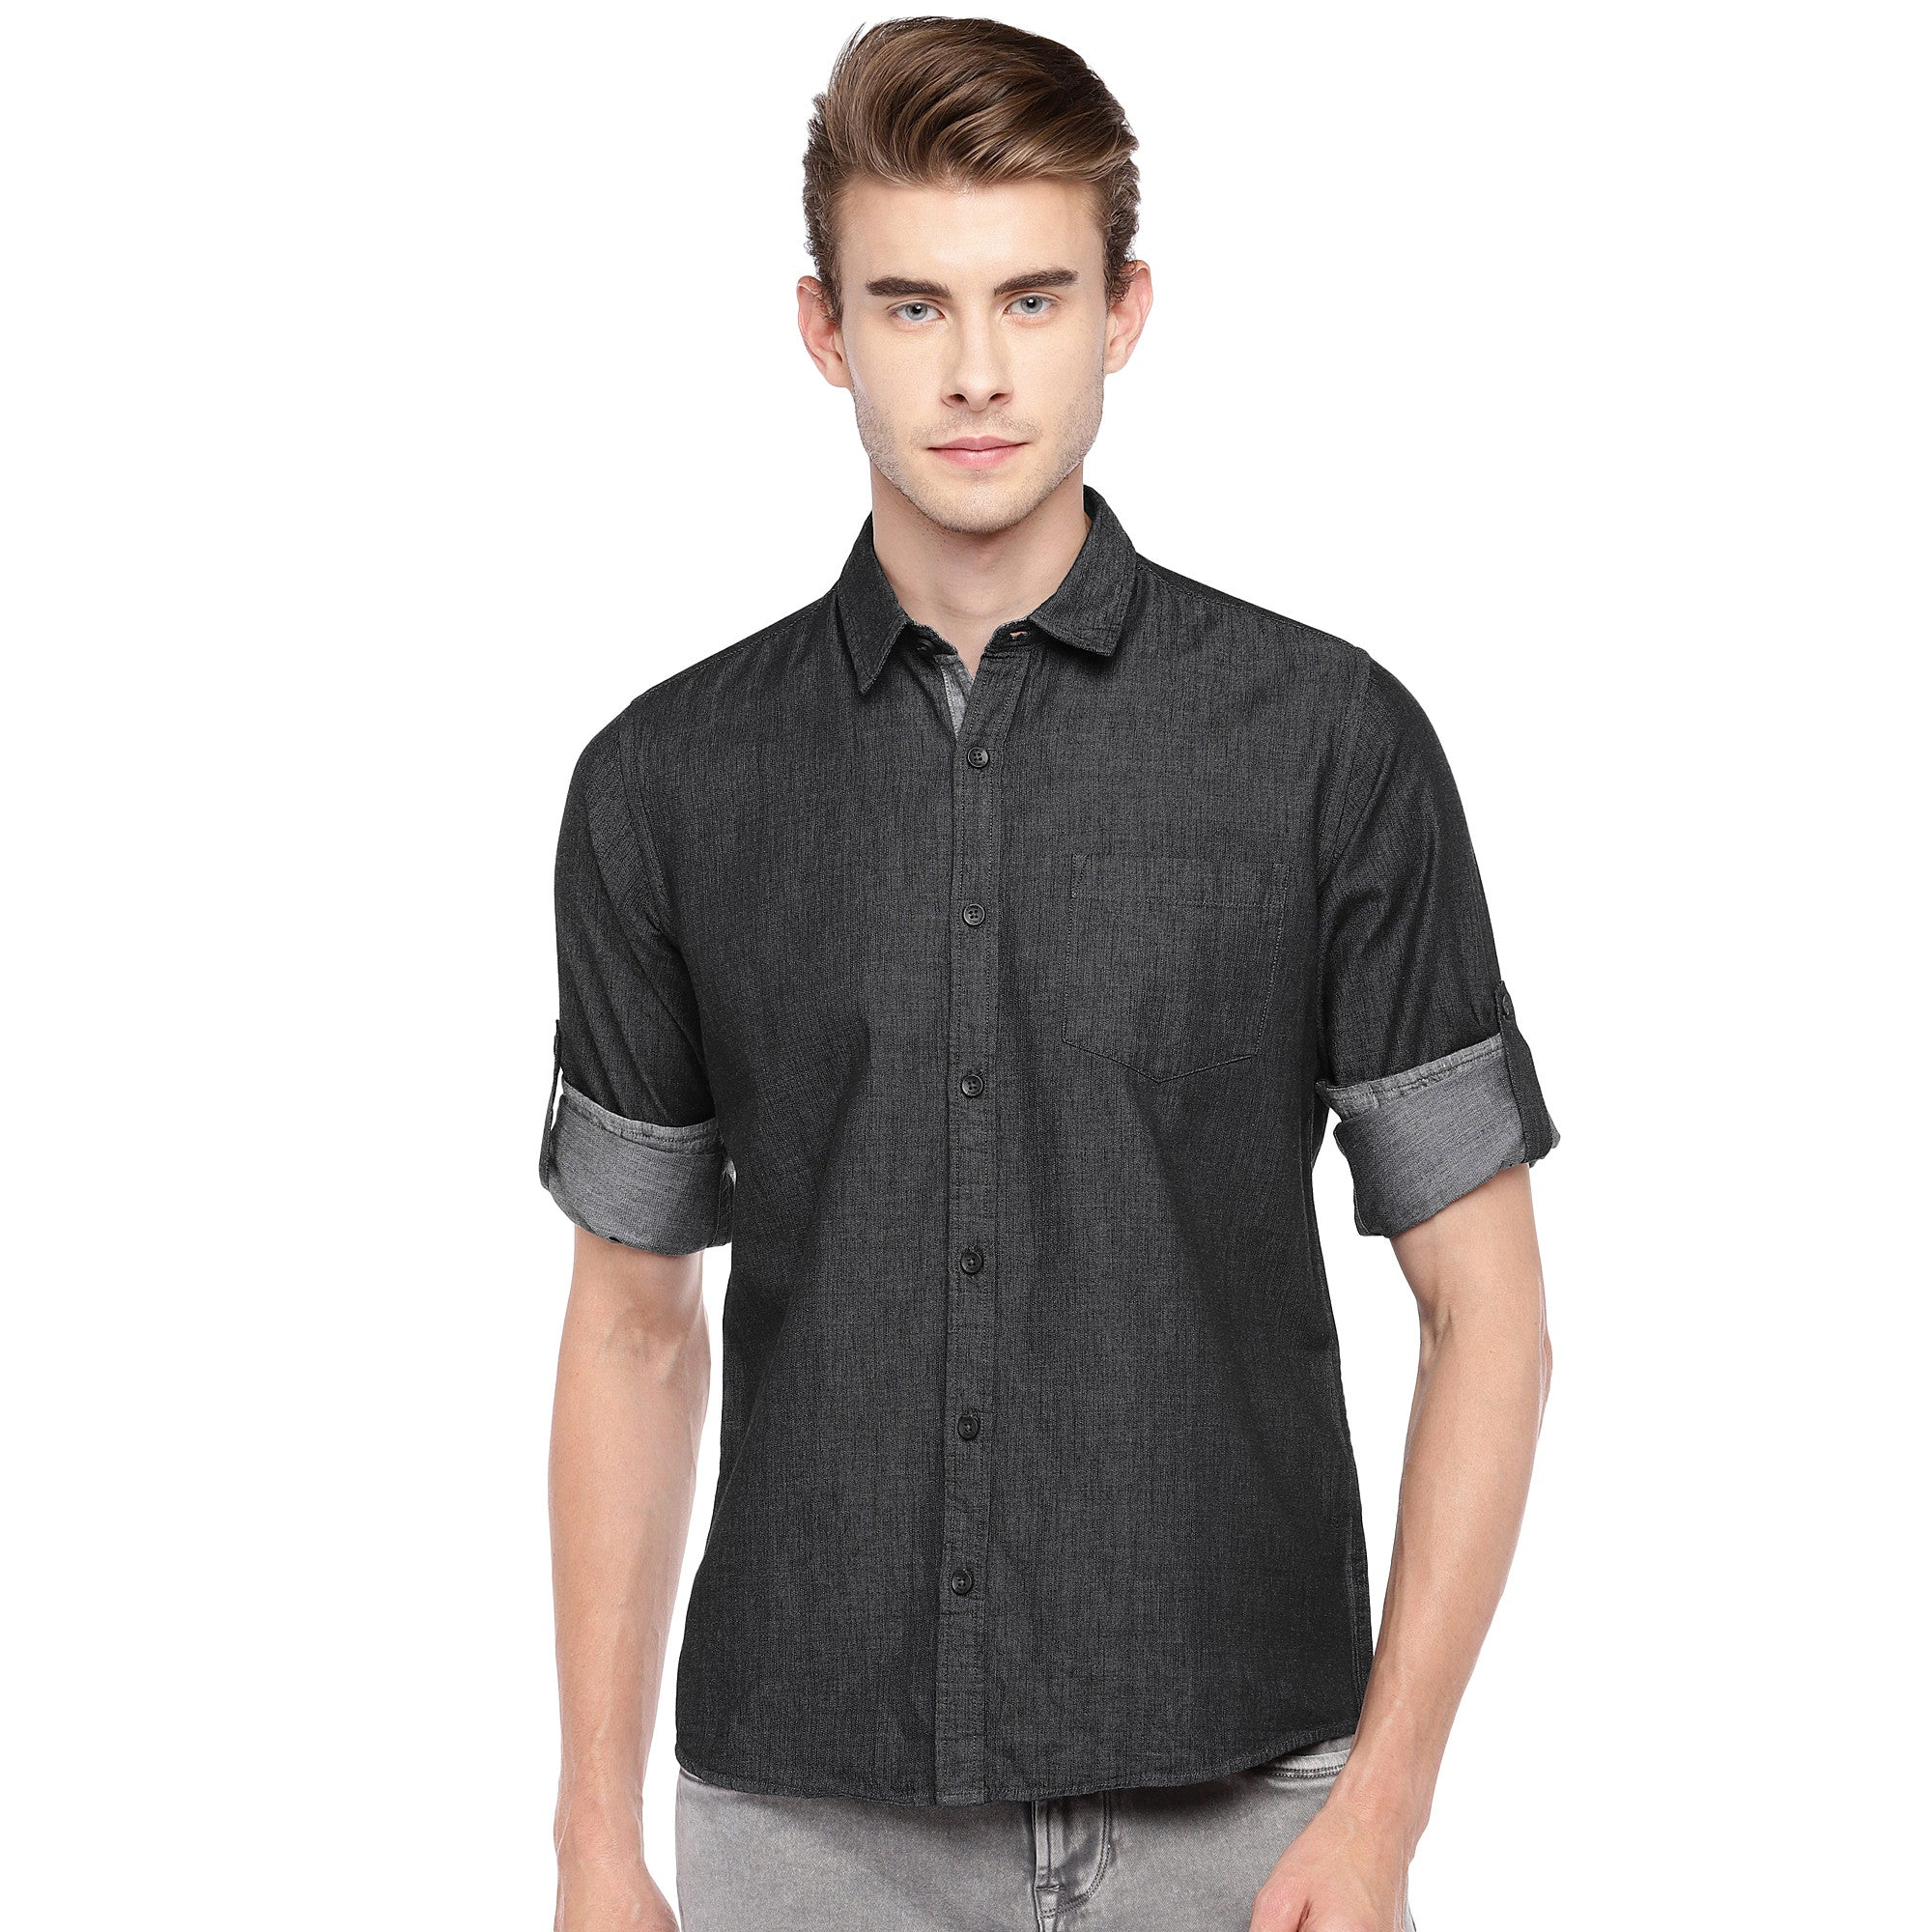 Charcoal Grey Regular Fit Solid Casual Shirt-1